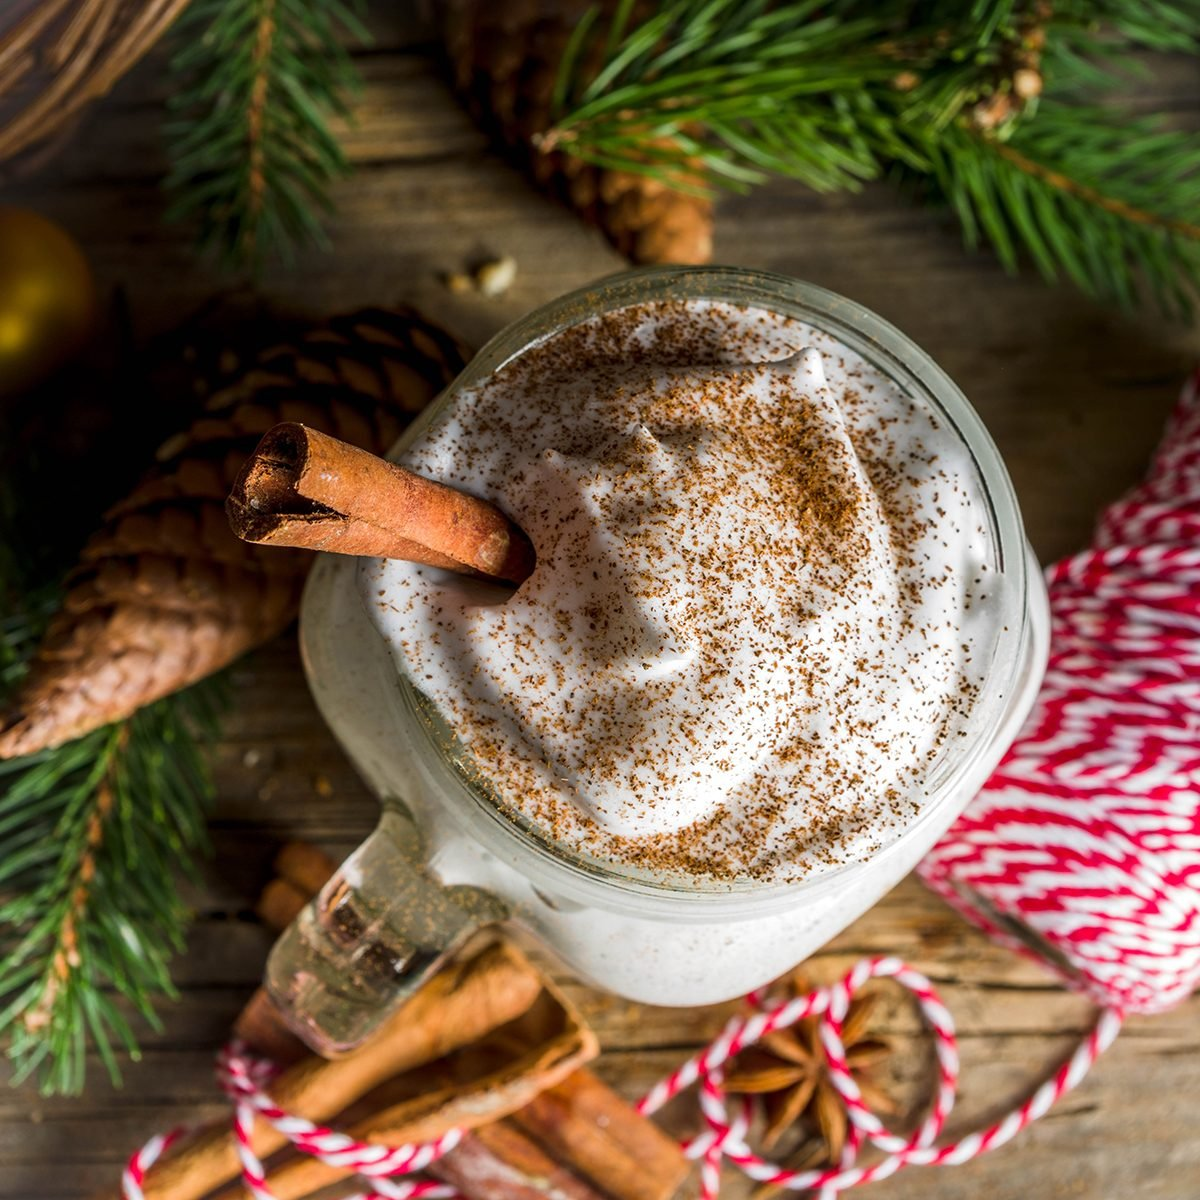 Christmas Tom and Jerry cocktail, whipped cream eggnog with spices, dairy milk beverage, with christmas decorations, rustic wooden background